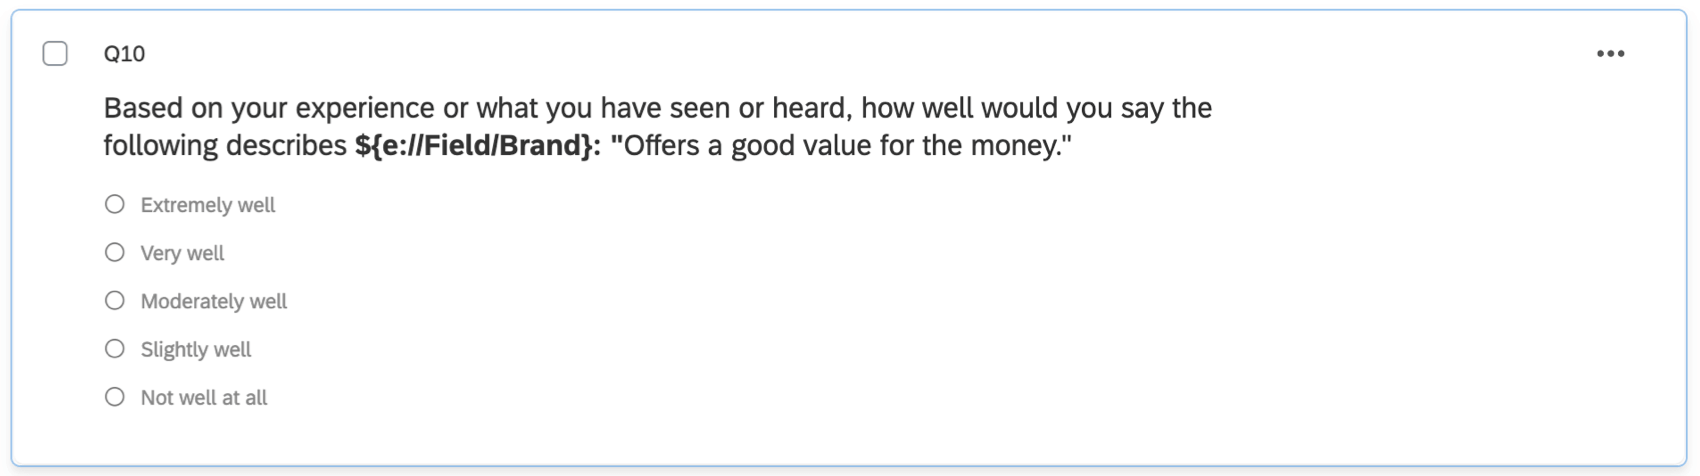 """A one-answer multiple choice question asking, """"Based on your experience, how well would you say this brand could be described as offering a good value for the money?"""" Then the answers are in a scale format from very well to not well at all"""